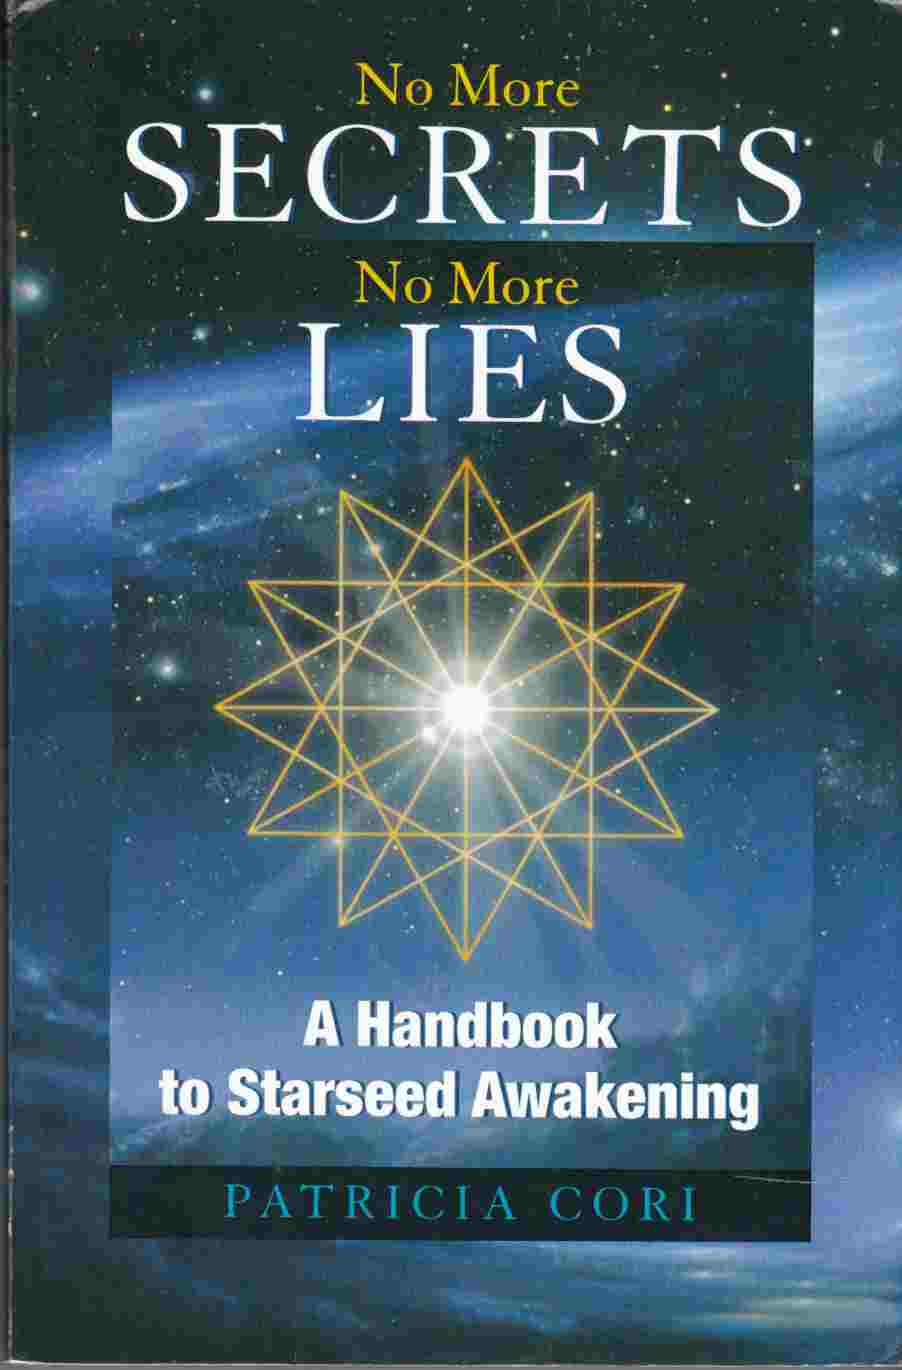 Image for No More Secrets No More Lies A Handbook to Starseed Awakening